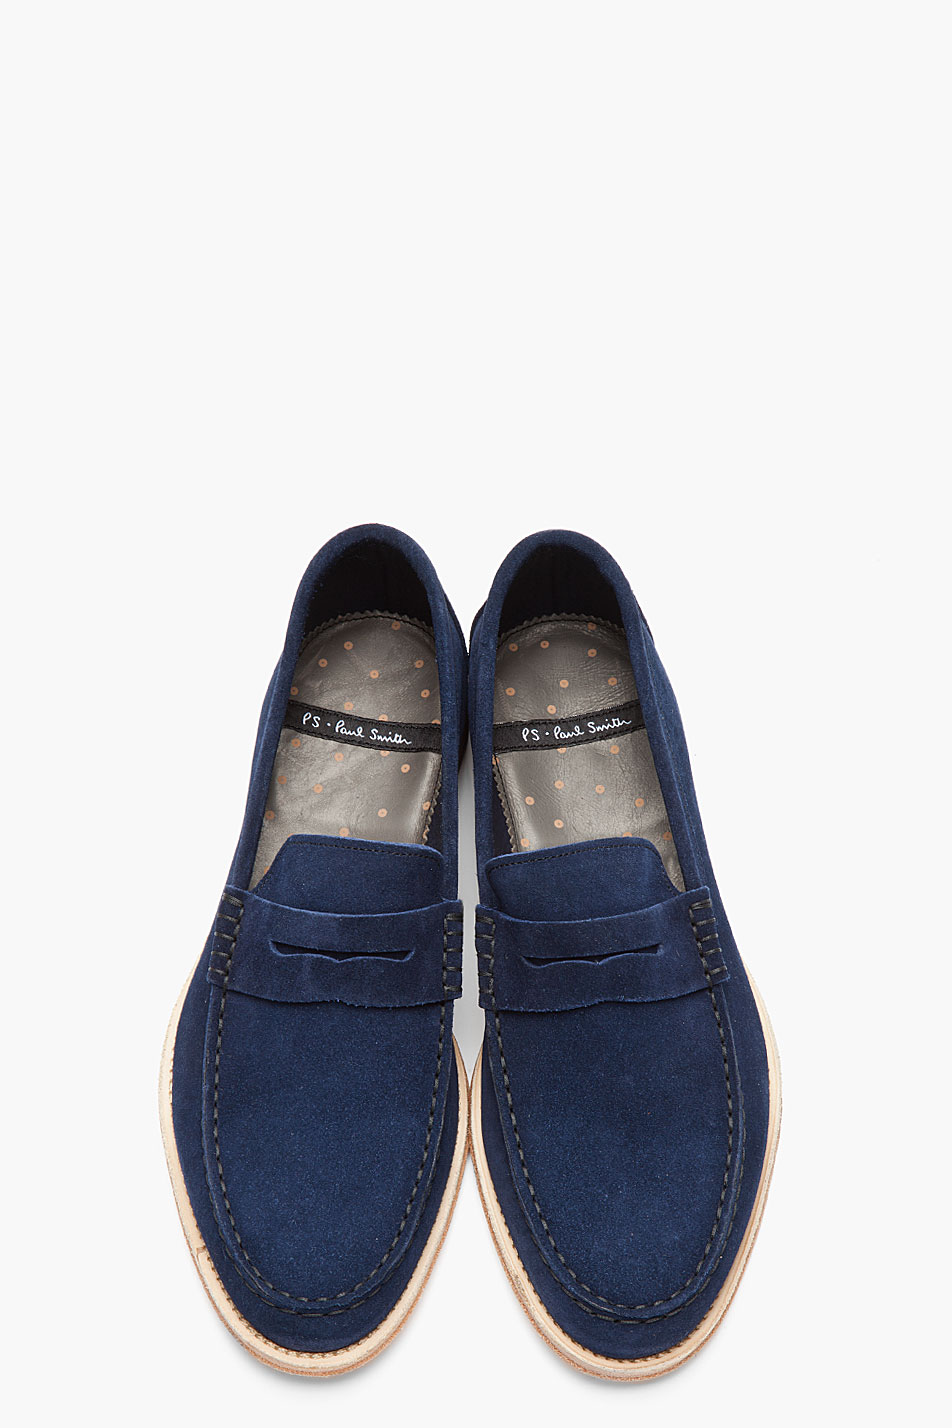 PS by Paul Smith Navy Suede Amalfi Nappato Penny Loafers 3